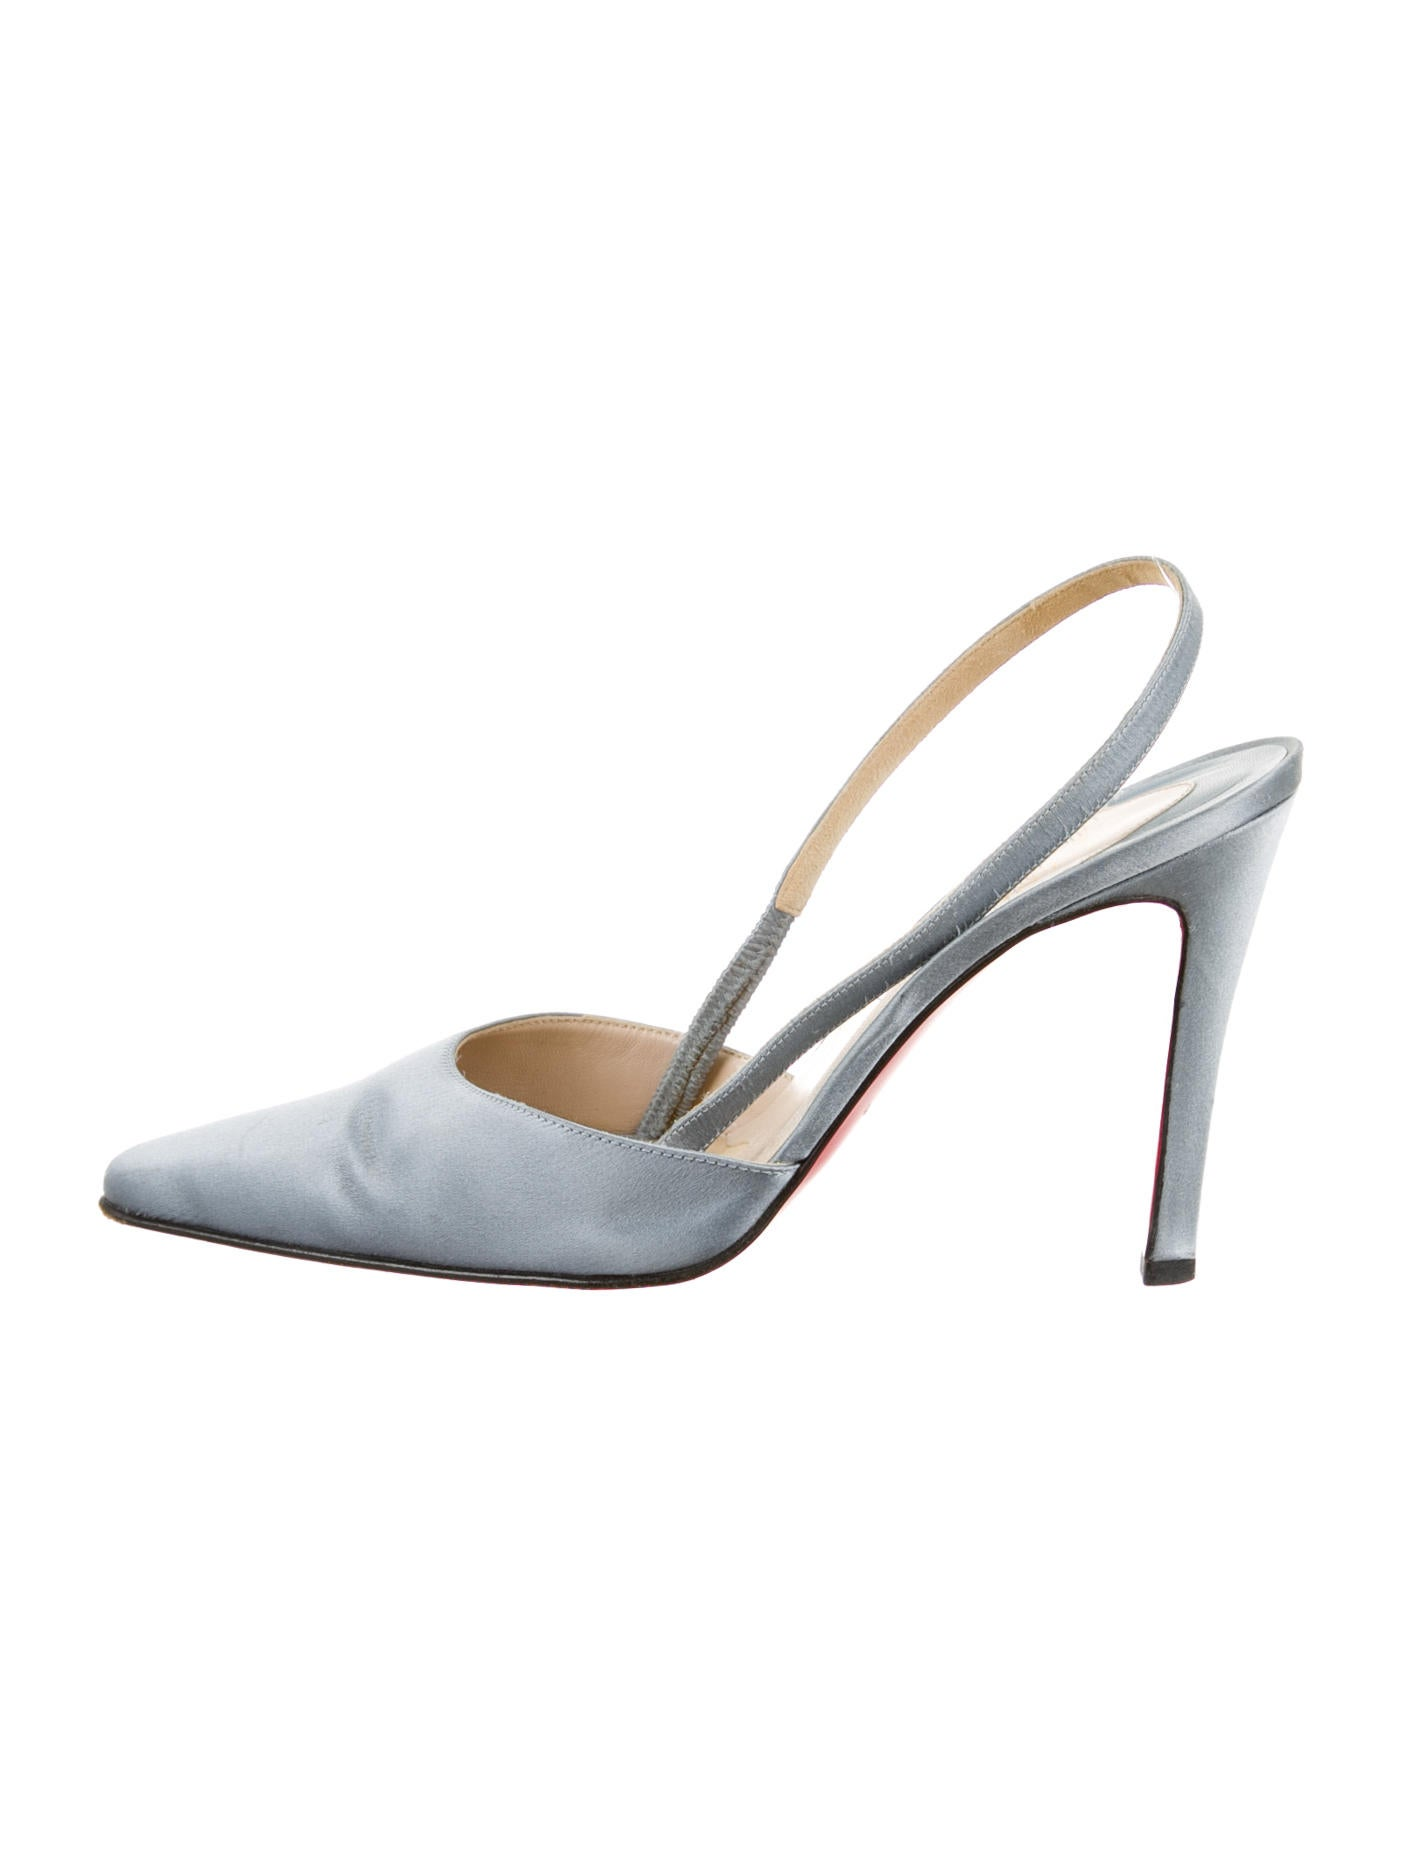 christian louboutin slingback pointed-toe pumps